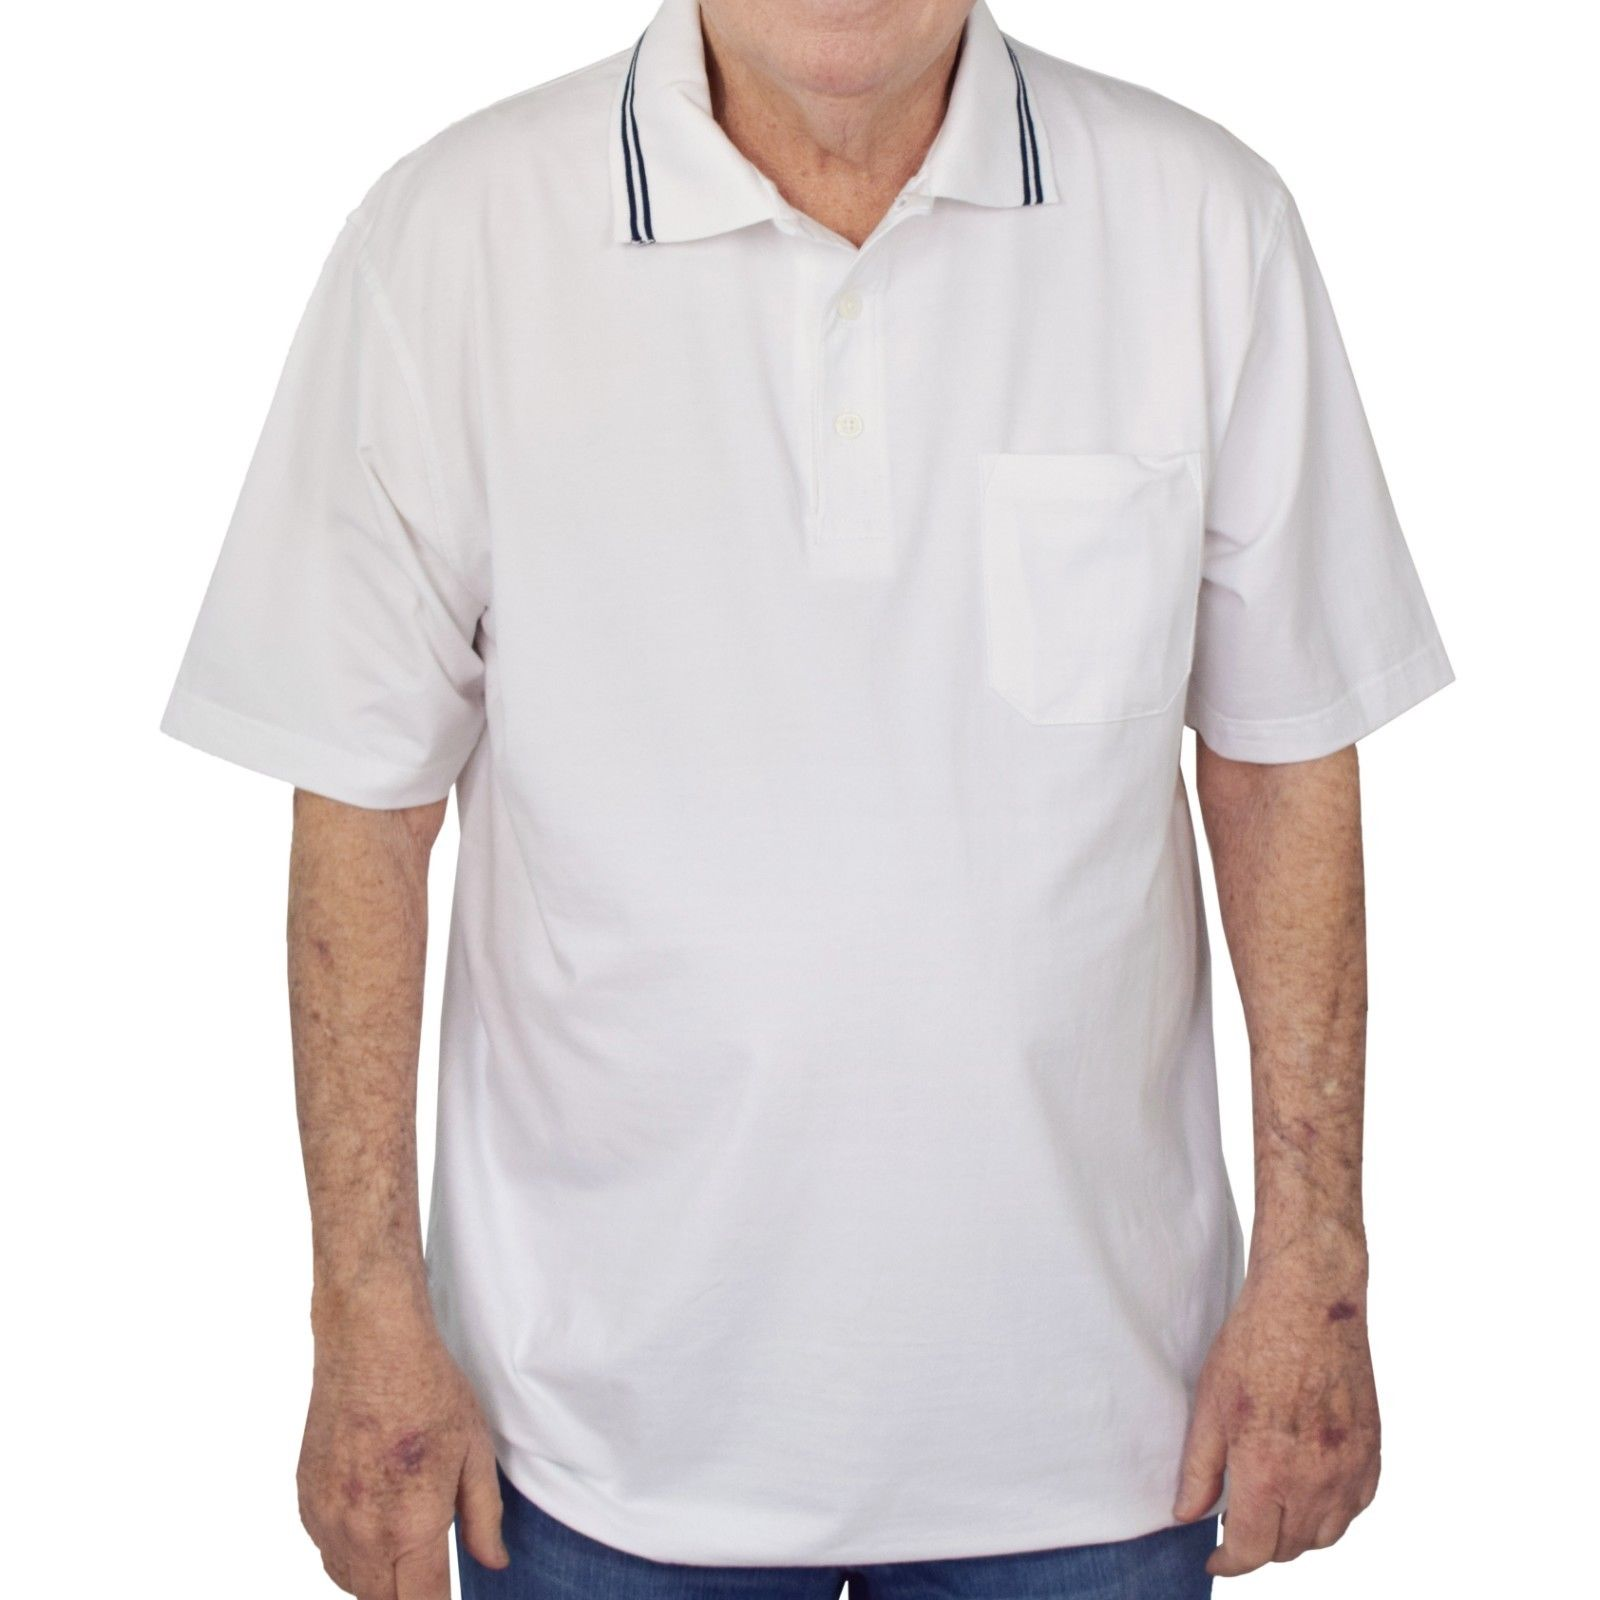 New with Tags Windham Pointe Men's Polo Golf Shirt with Pocket - 5 Colors